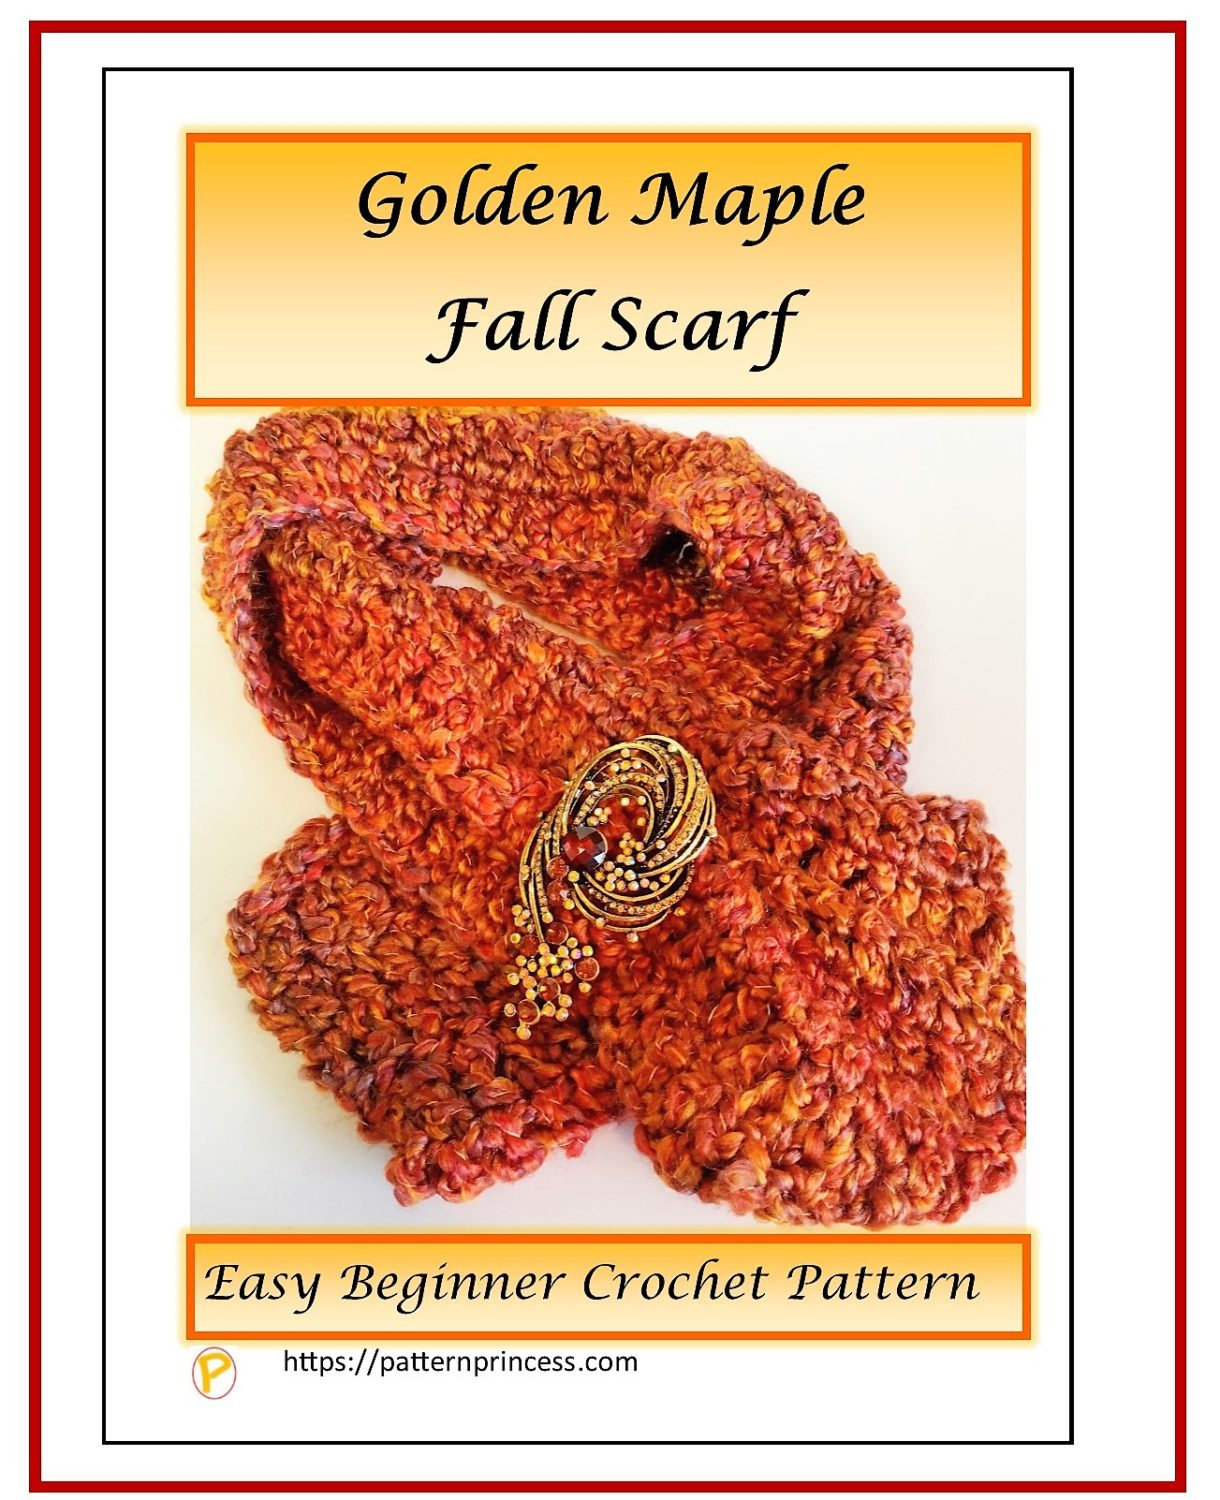 Golden Maple Fall Scarf 1